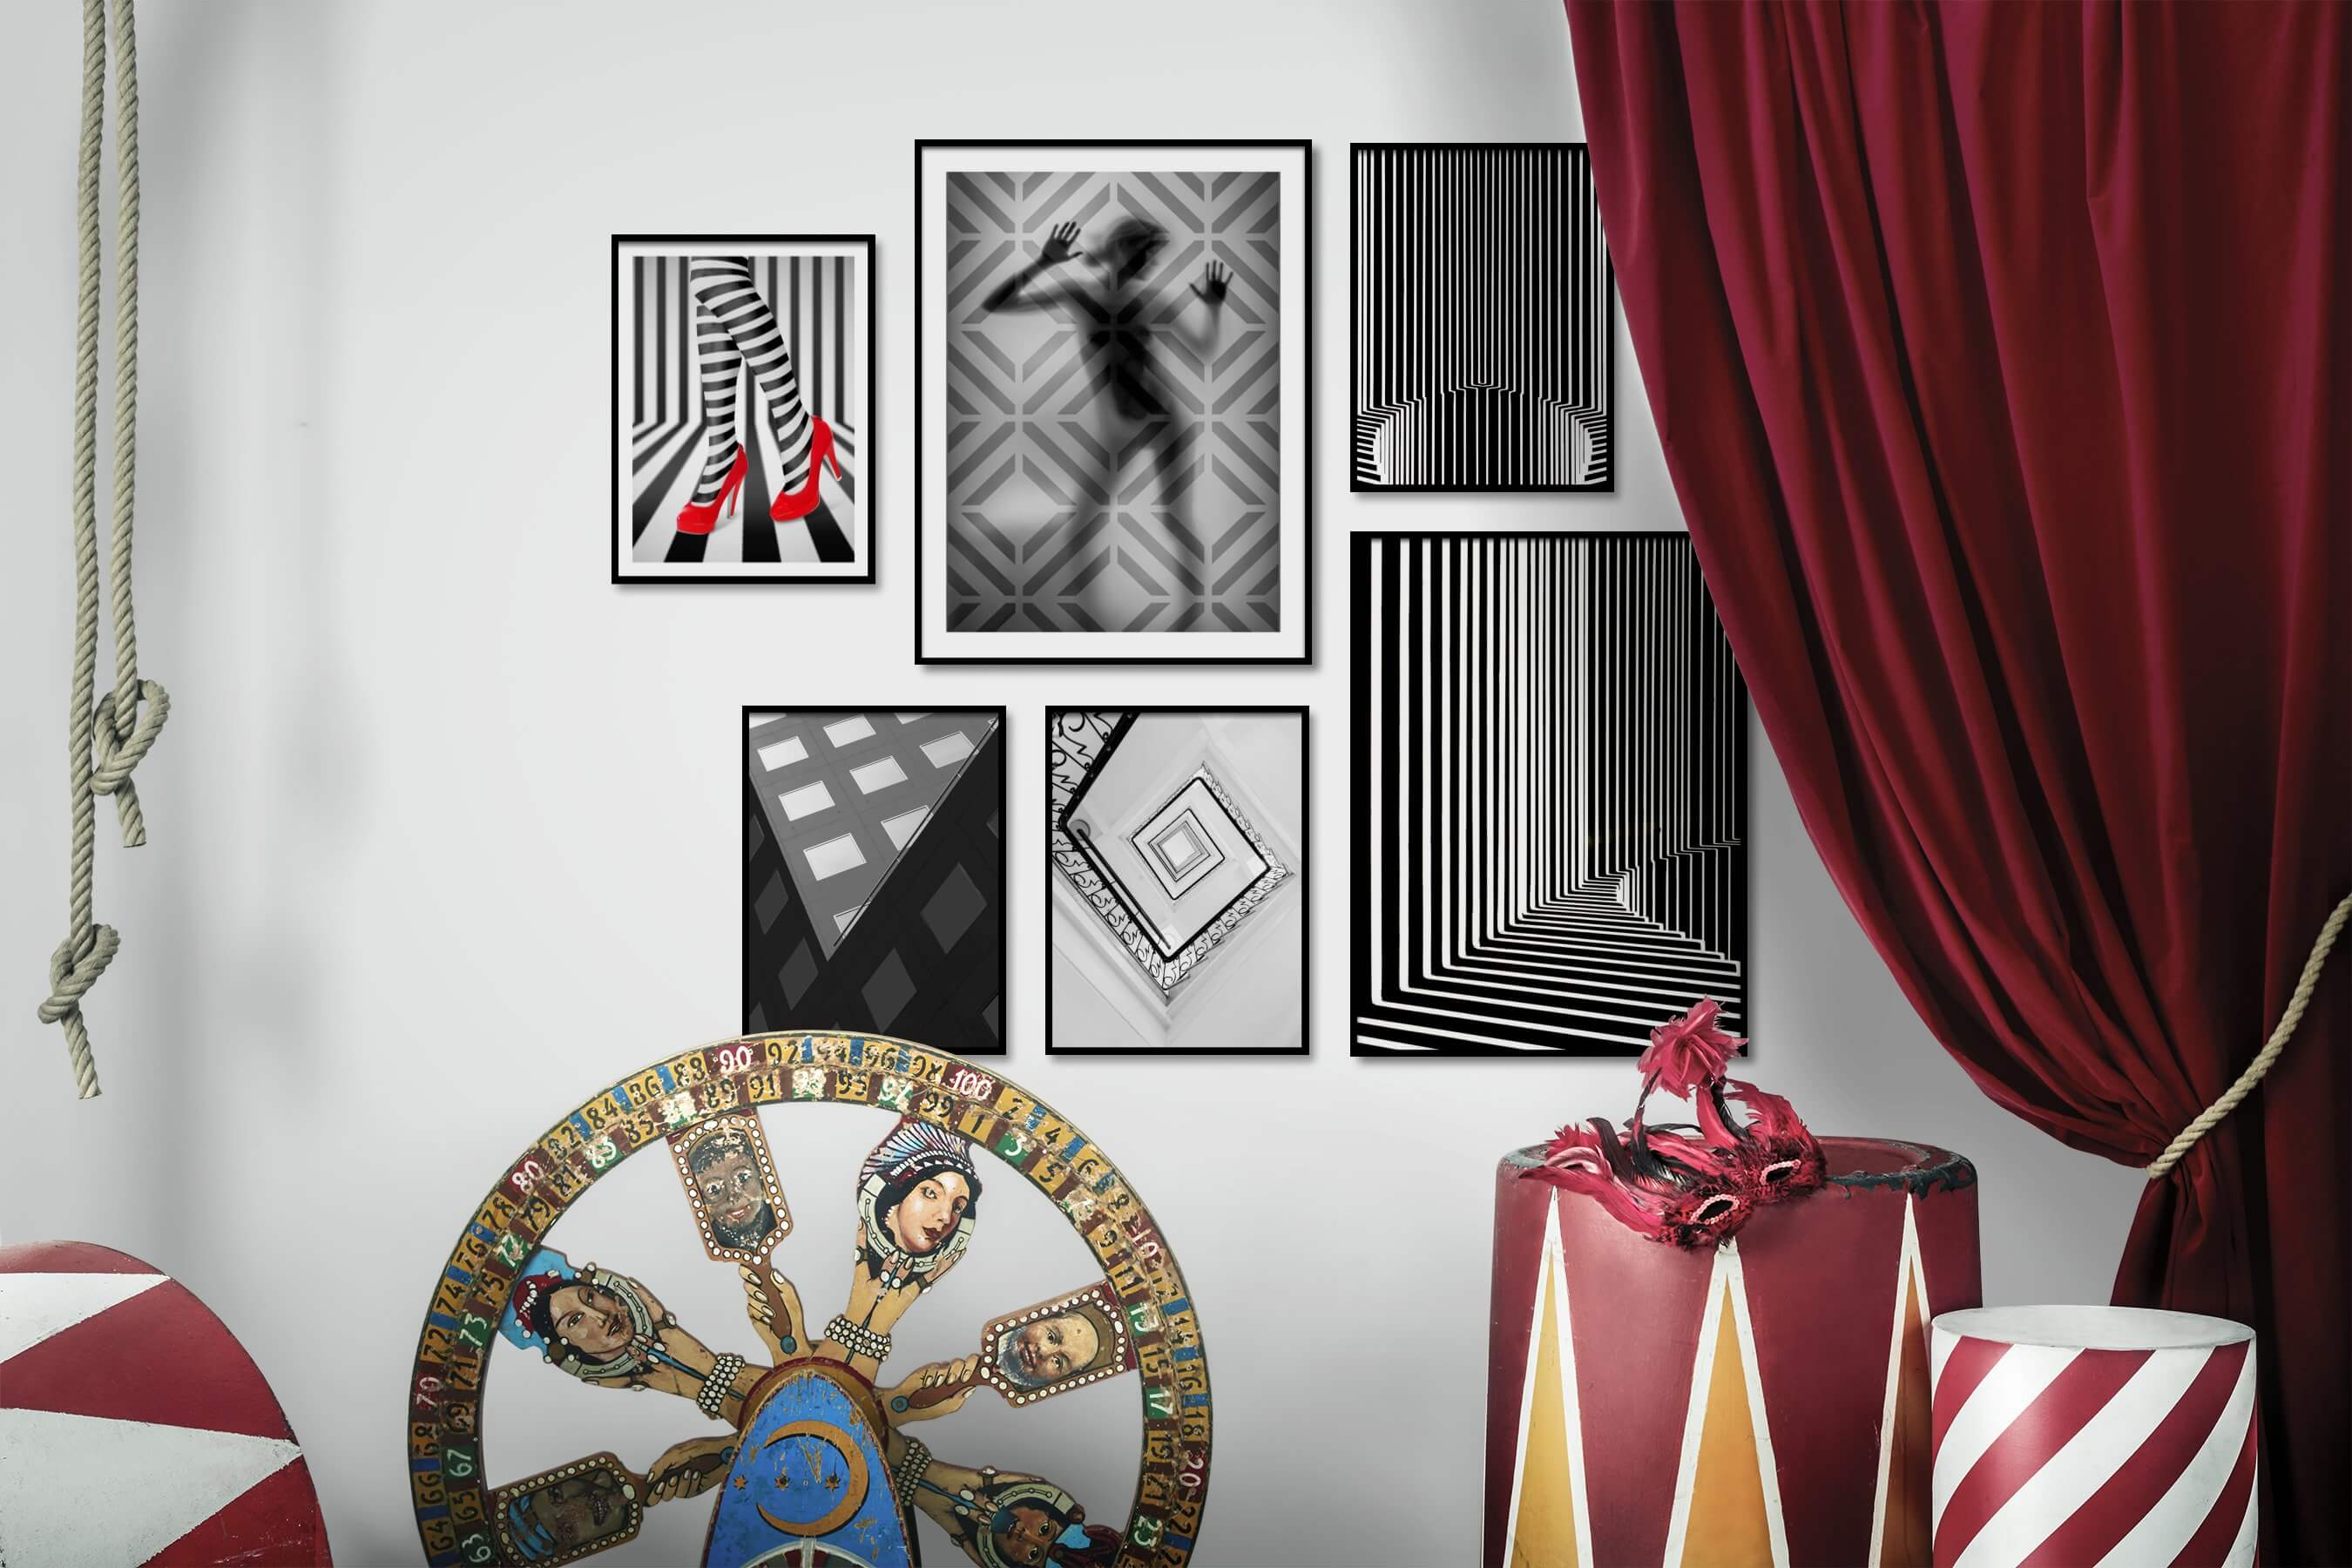 Gallery wall idea with six framed pictures arranged on a wall depicting Fashion & Beauty, For the Maximalist, Black & White, For the Minimalist, City Life, and For the Moderate